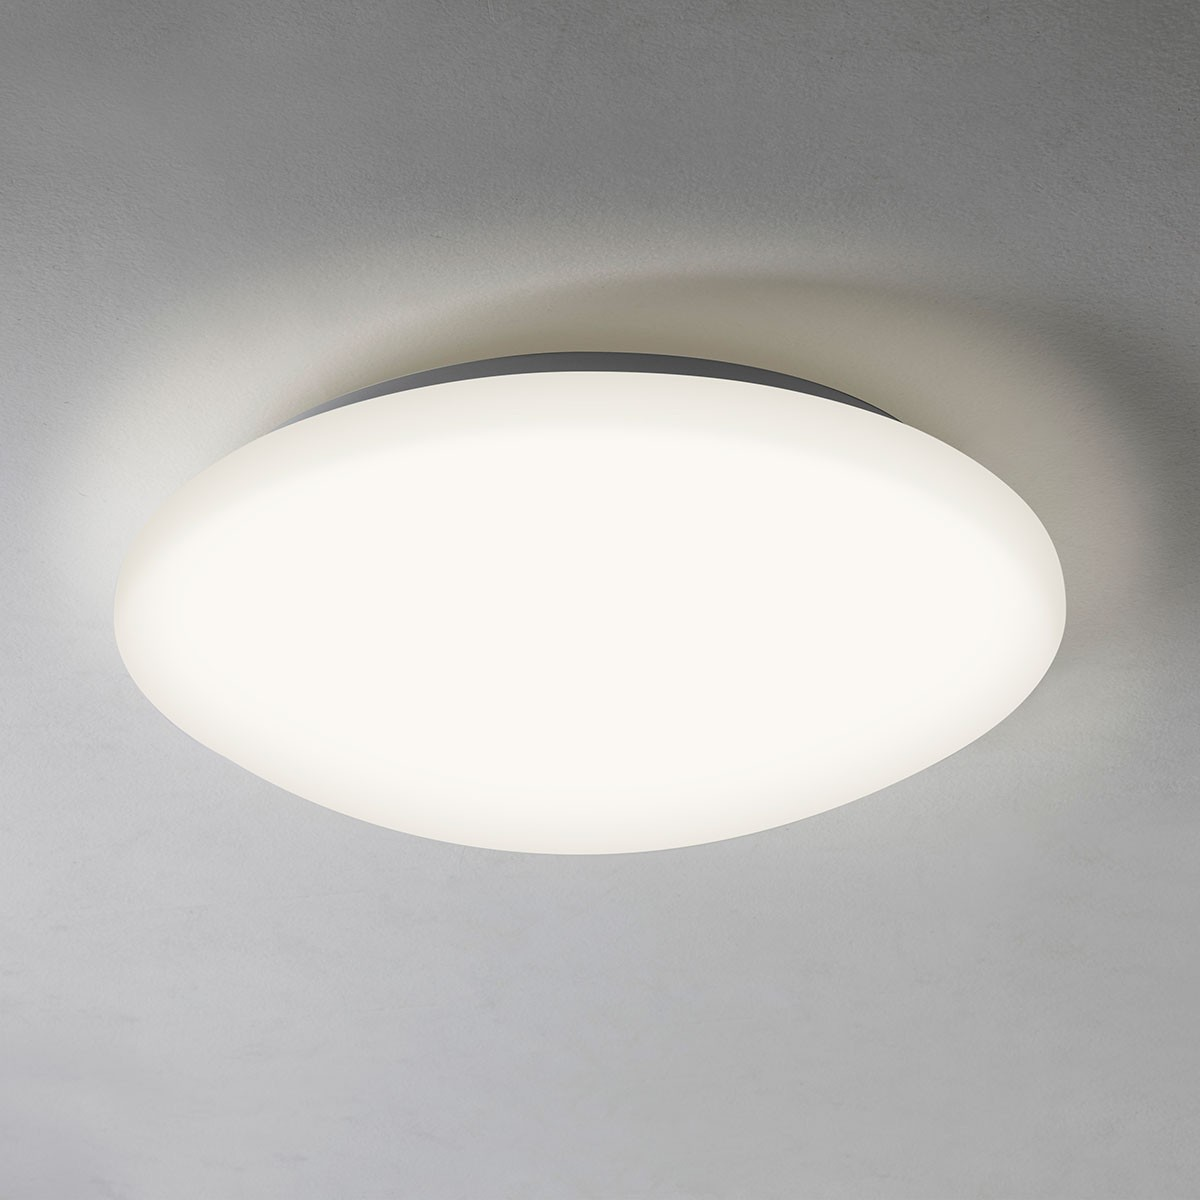 Astro Massa Sensor White Led Ceiling Light With Motion